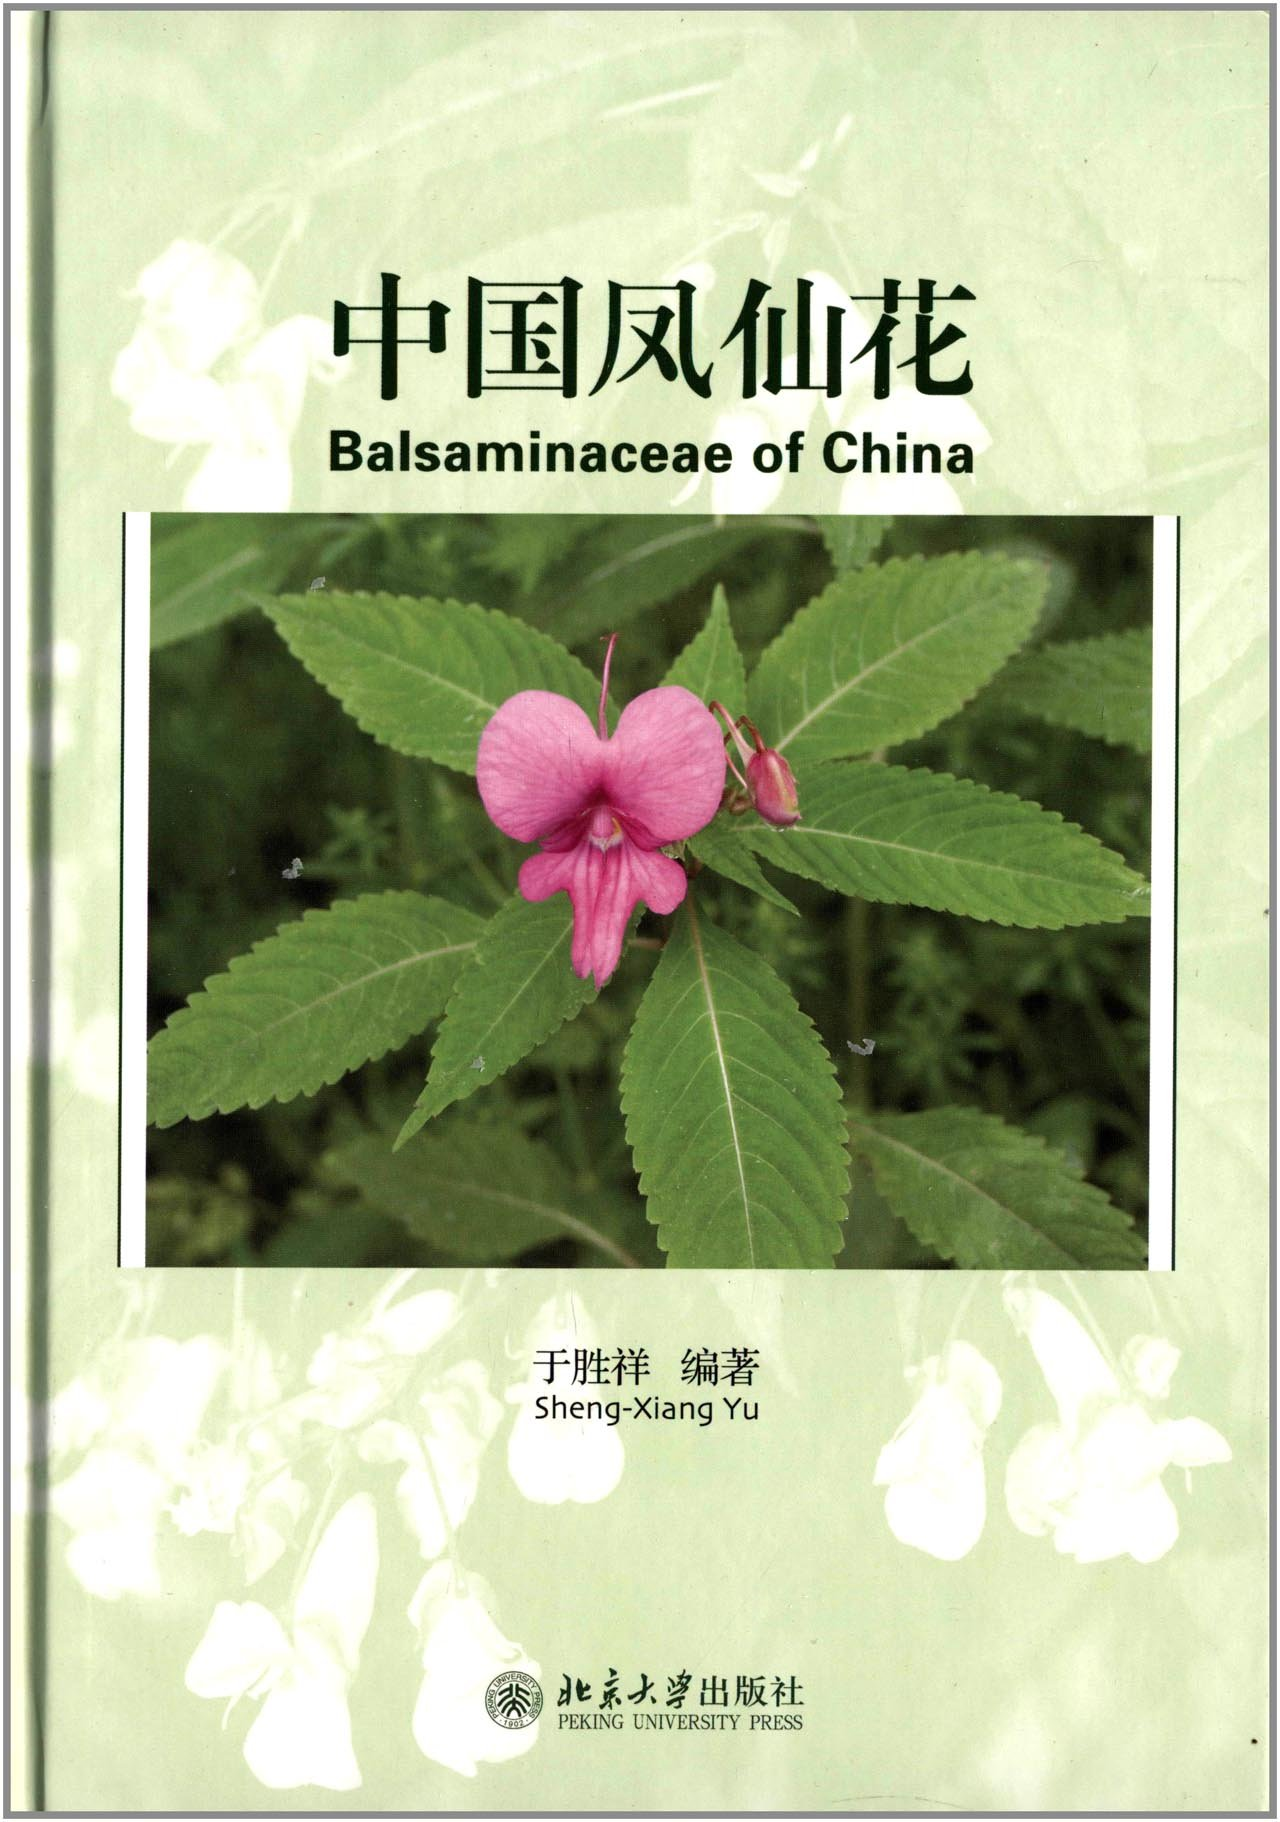 Balsaminaceae of China